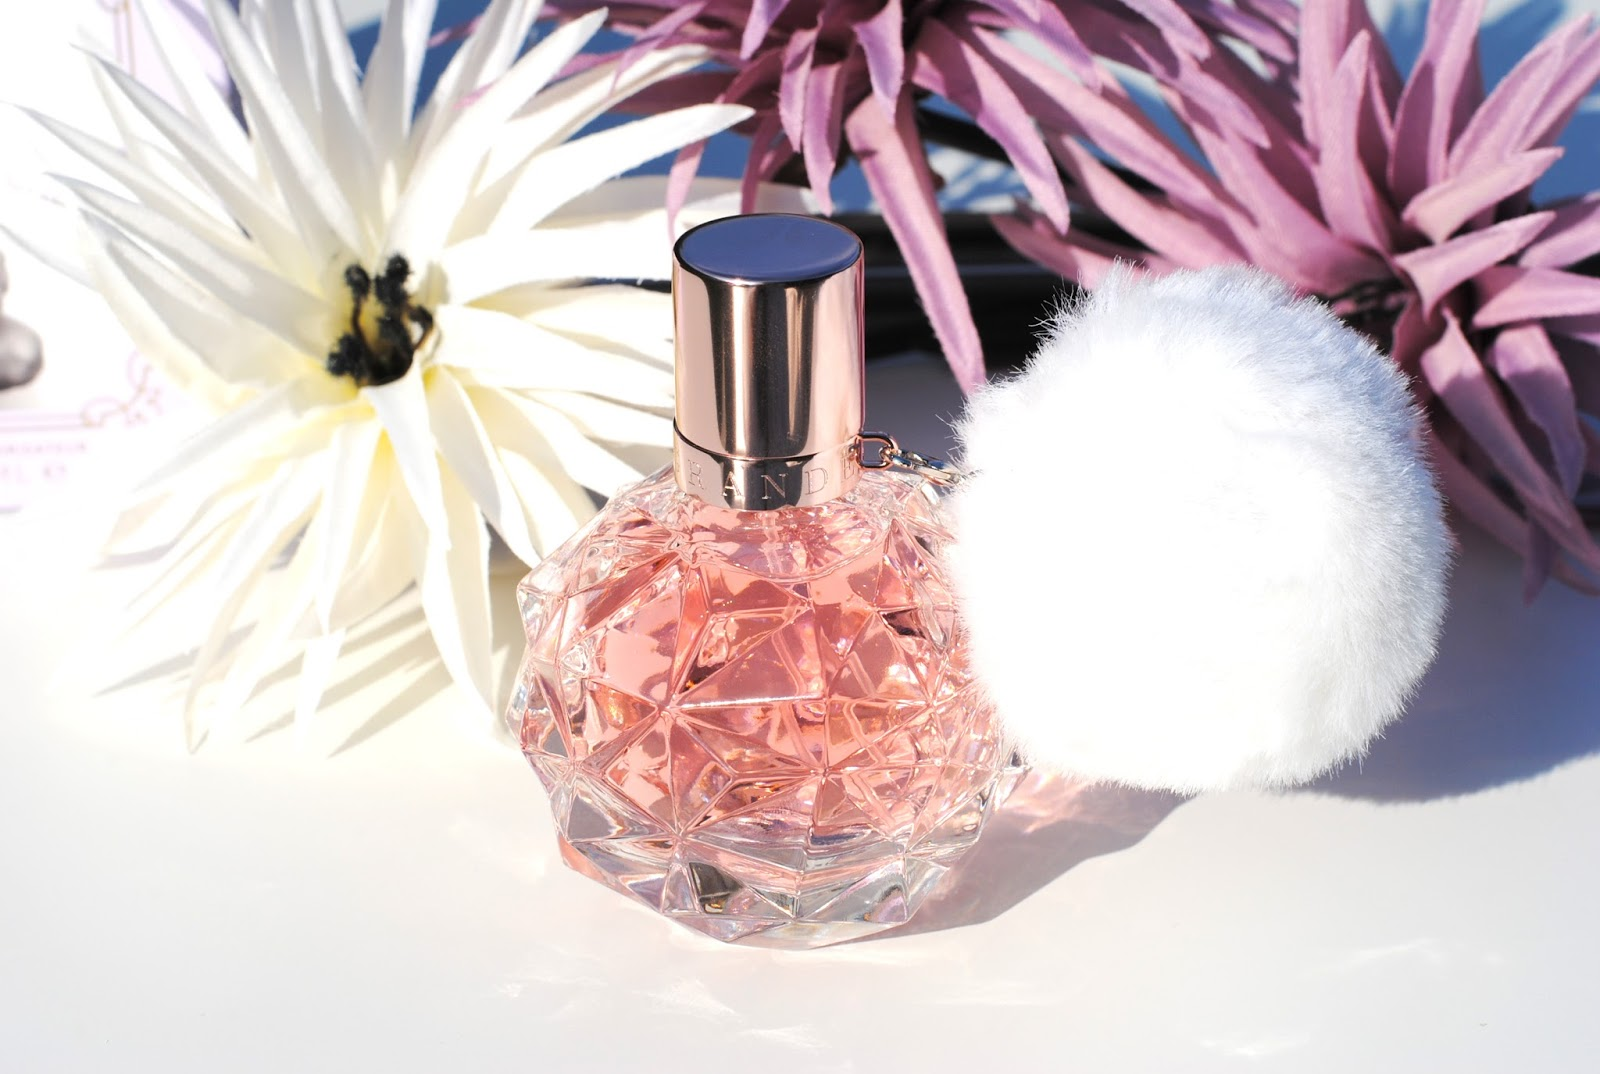 Ari by ariana grande perfume review among the stars perfume - Ari By Ariana Grande 29 95 For 30ml Exclusively Available At Douglas A Young Sweet Scent And A Very Pretty Bottle Not Bad For A Celebrity Fragrance